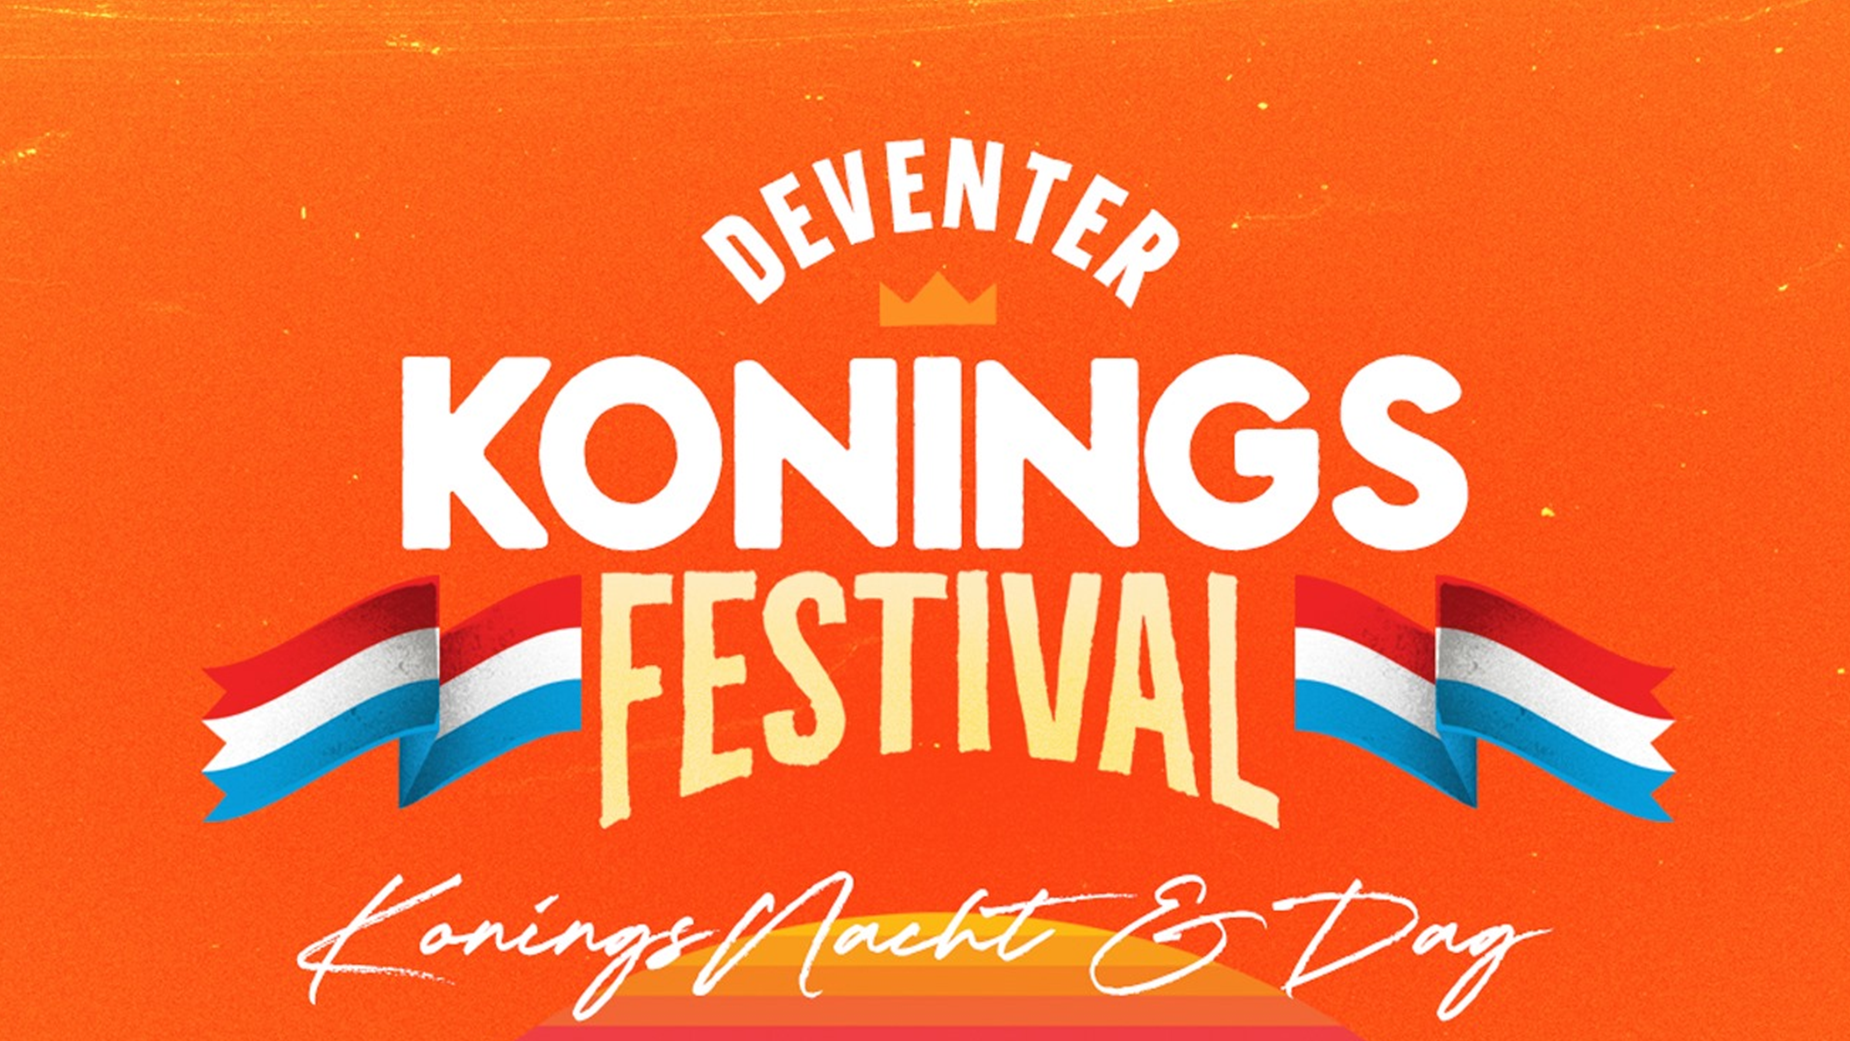 Deventer Koningsfestival